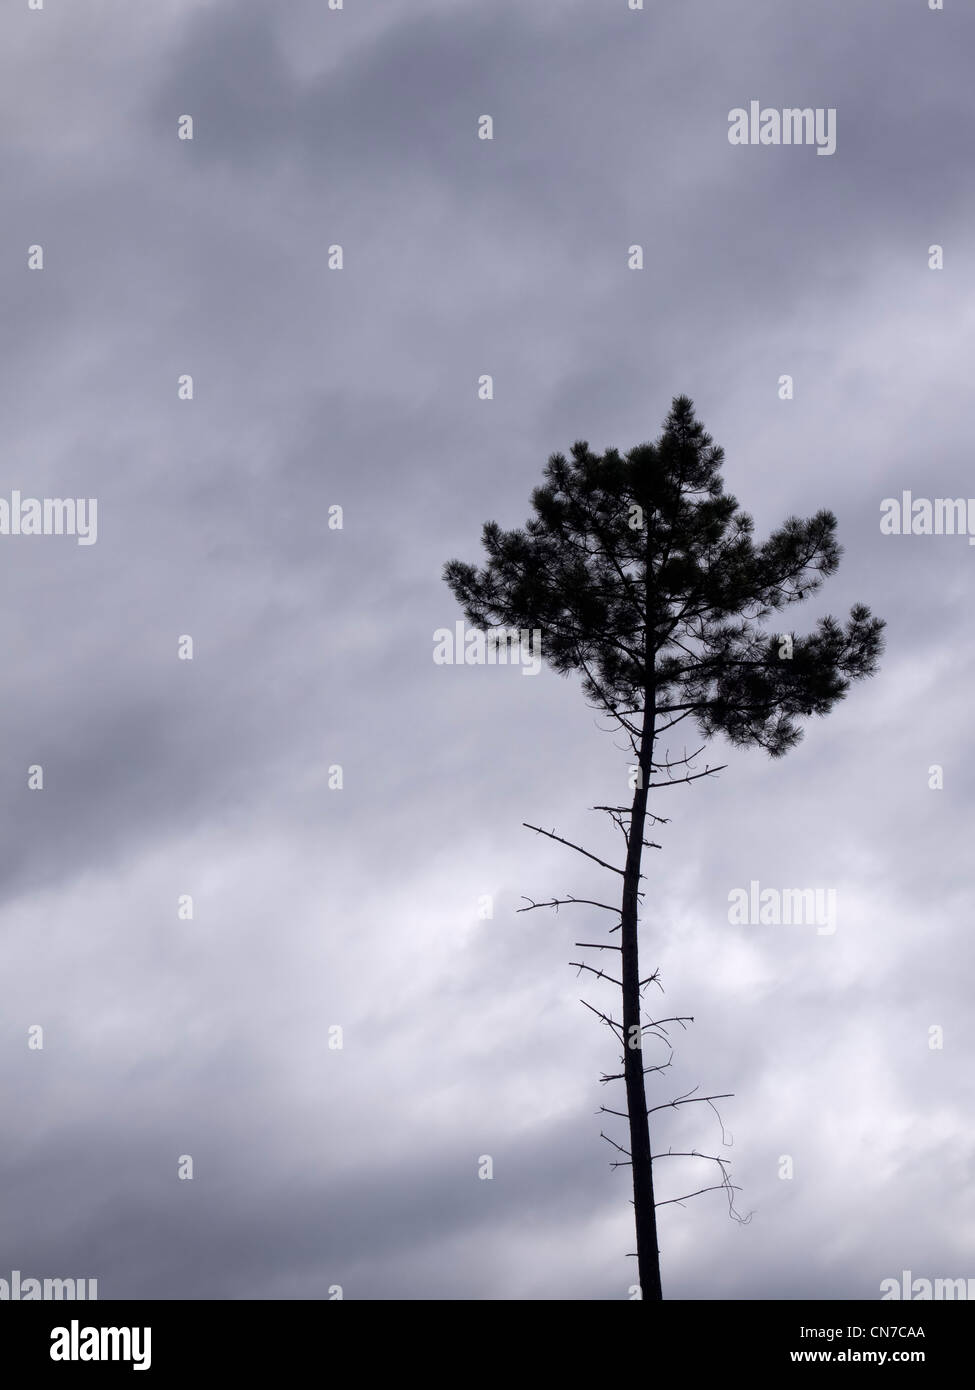 Pine tree and menacing cloudy sky - Stock Image